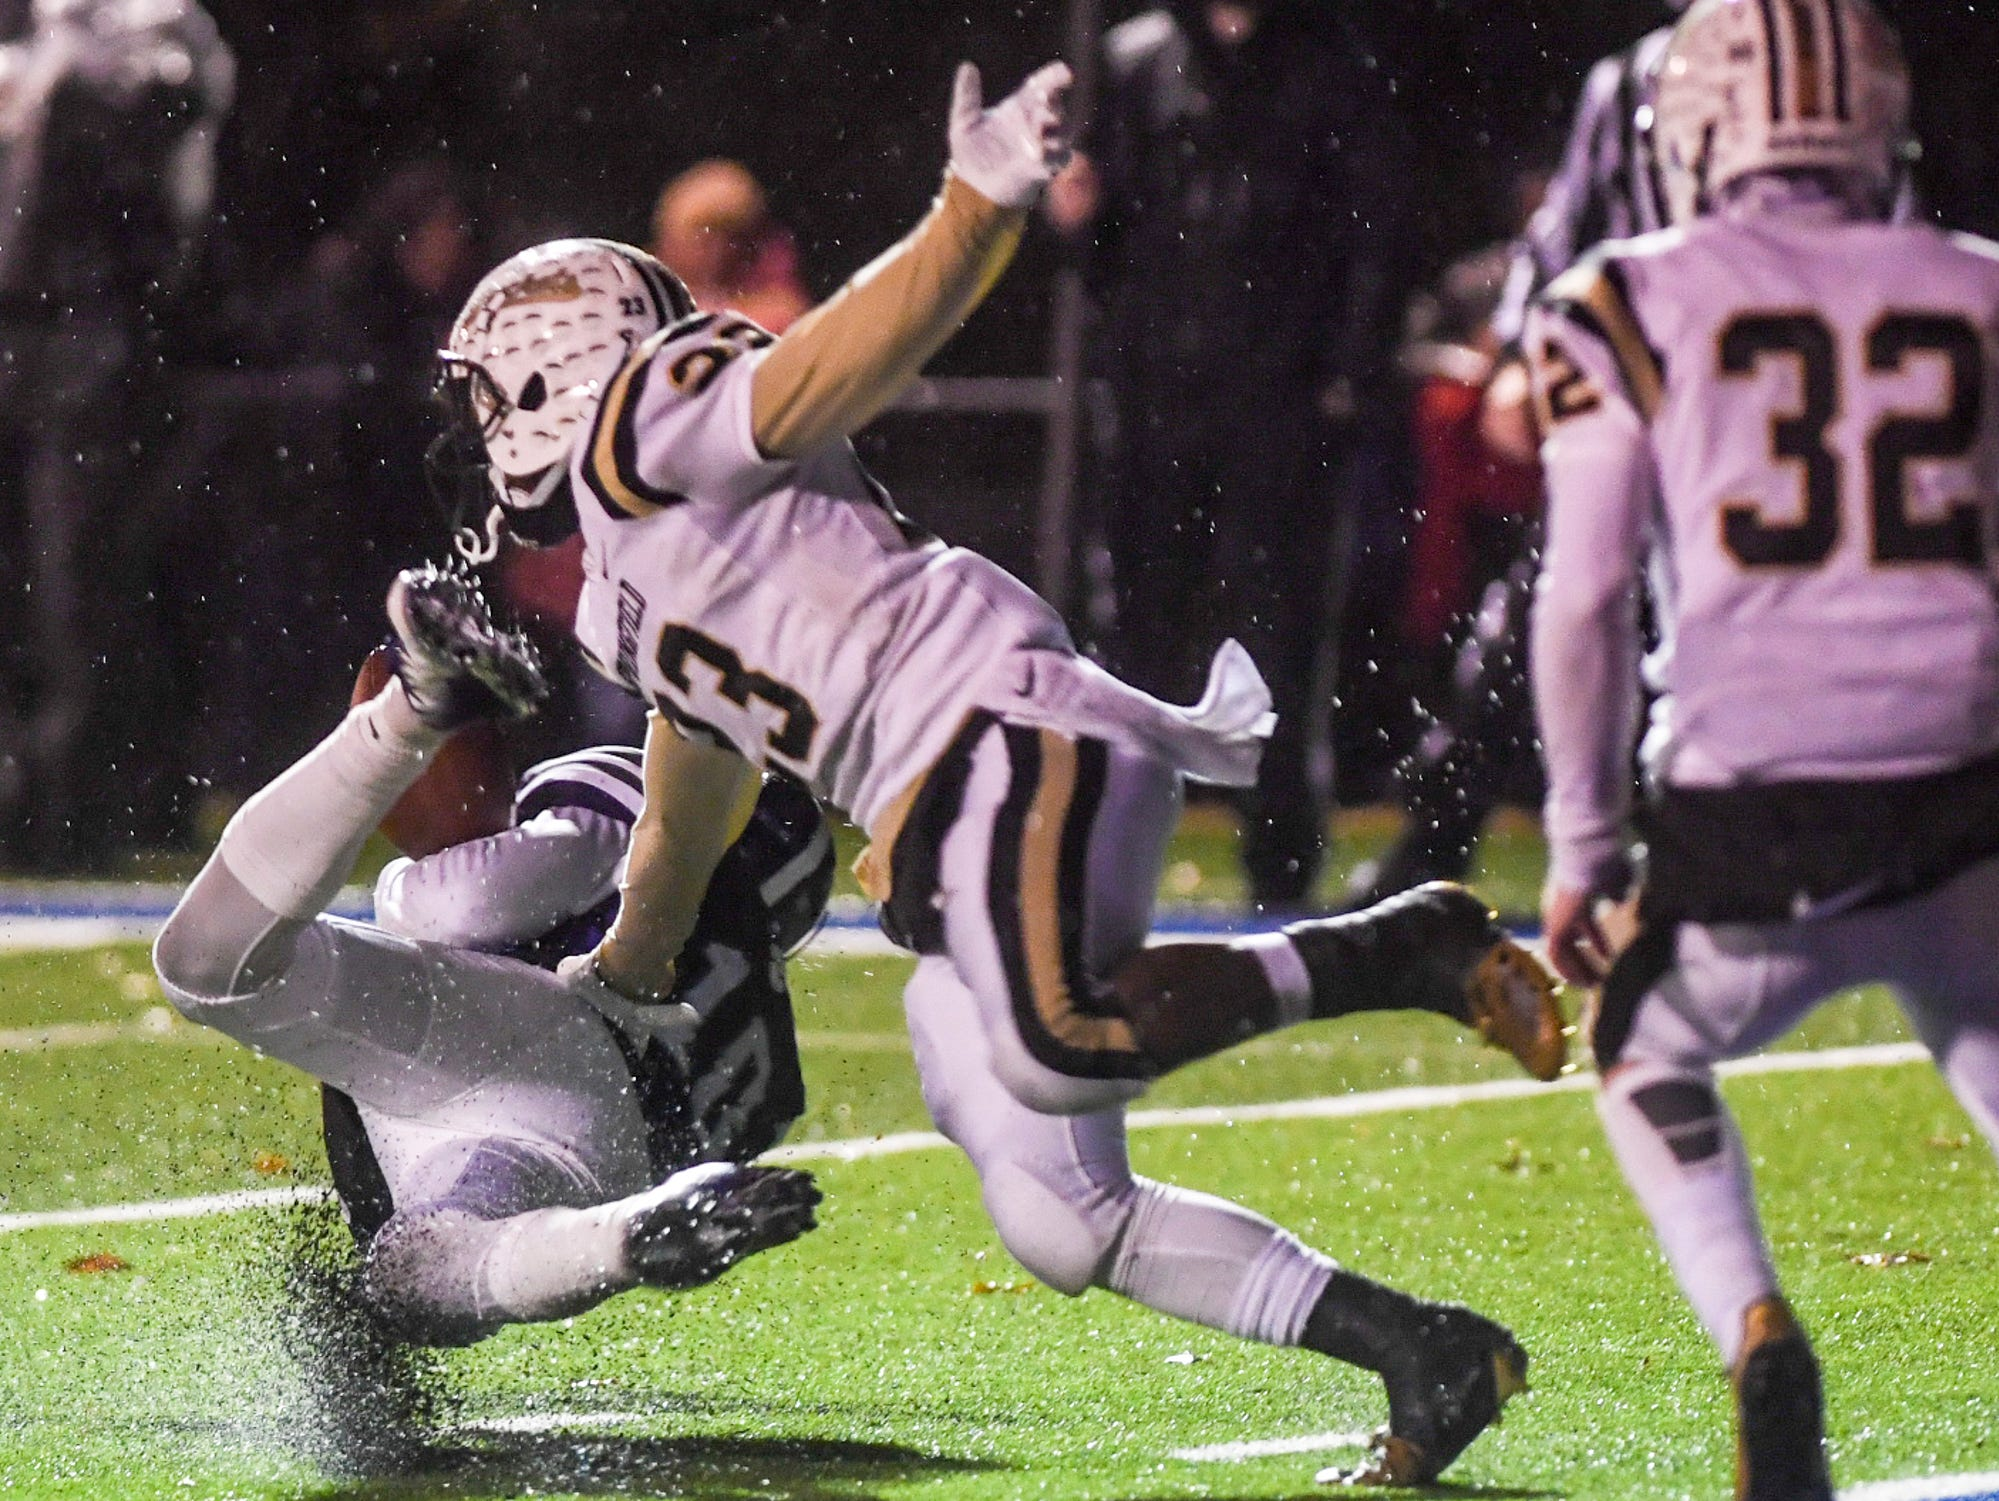 """Haywood's Taylor Shields makes a diving catch at the 2-yard-line while defended by Springfield's Dayron """"Fat Cat"""" Johnson during their Class 4A semifinal game, Friday, November 23. Haywood defeated Springfield, 49-14."""